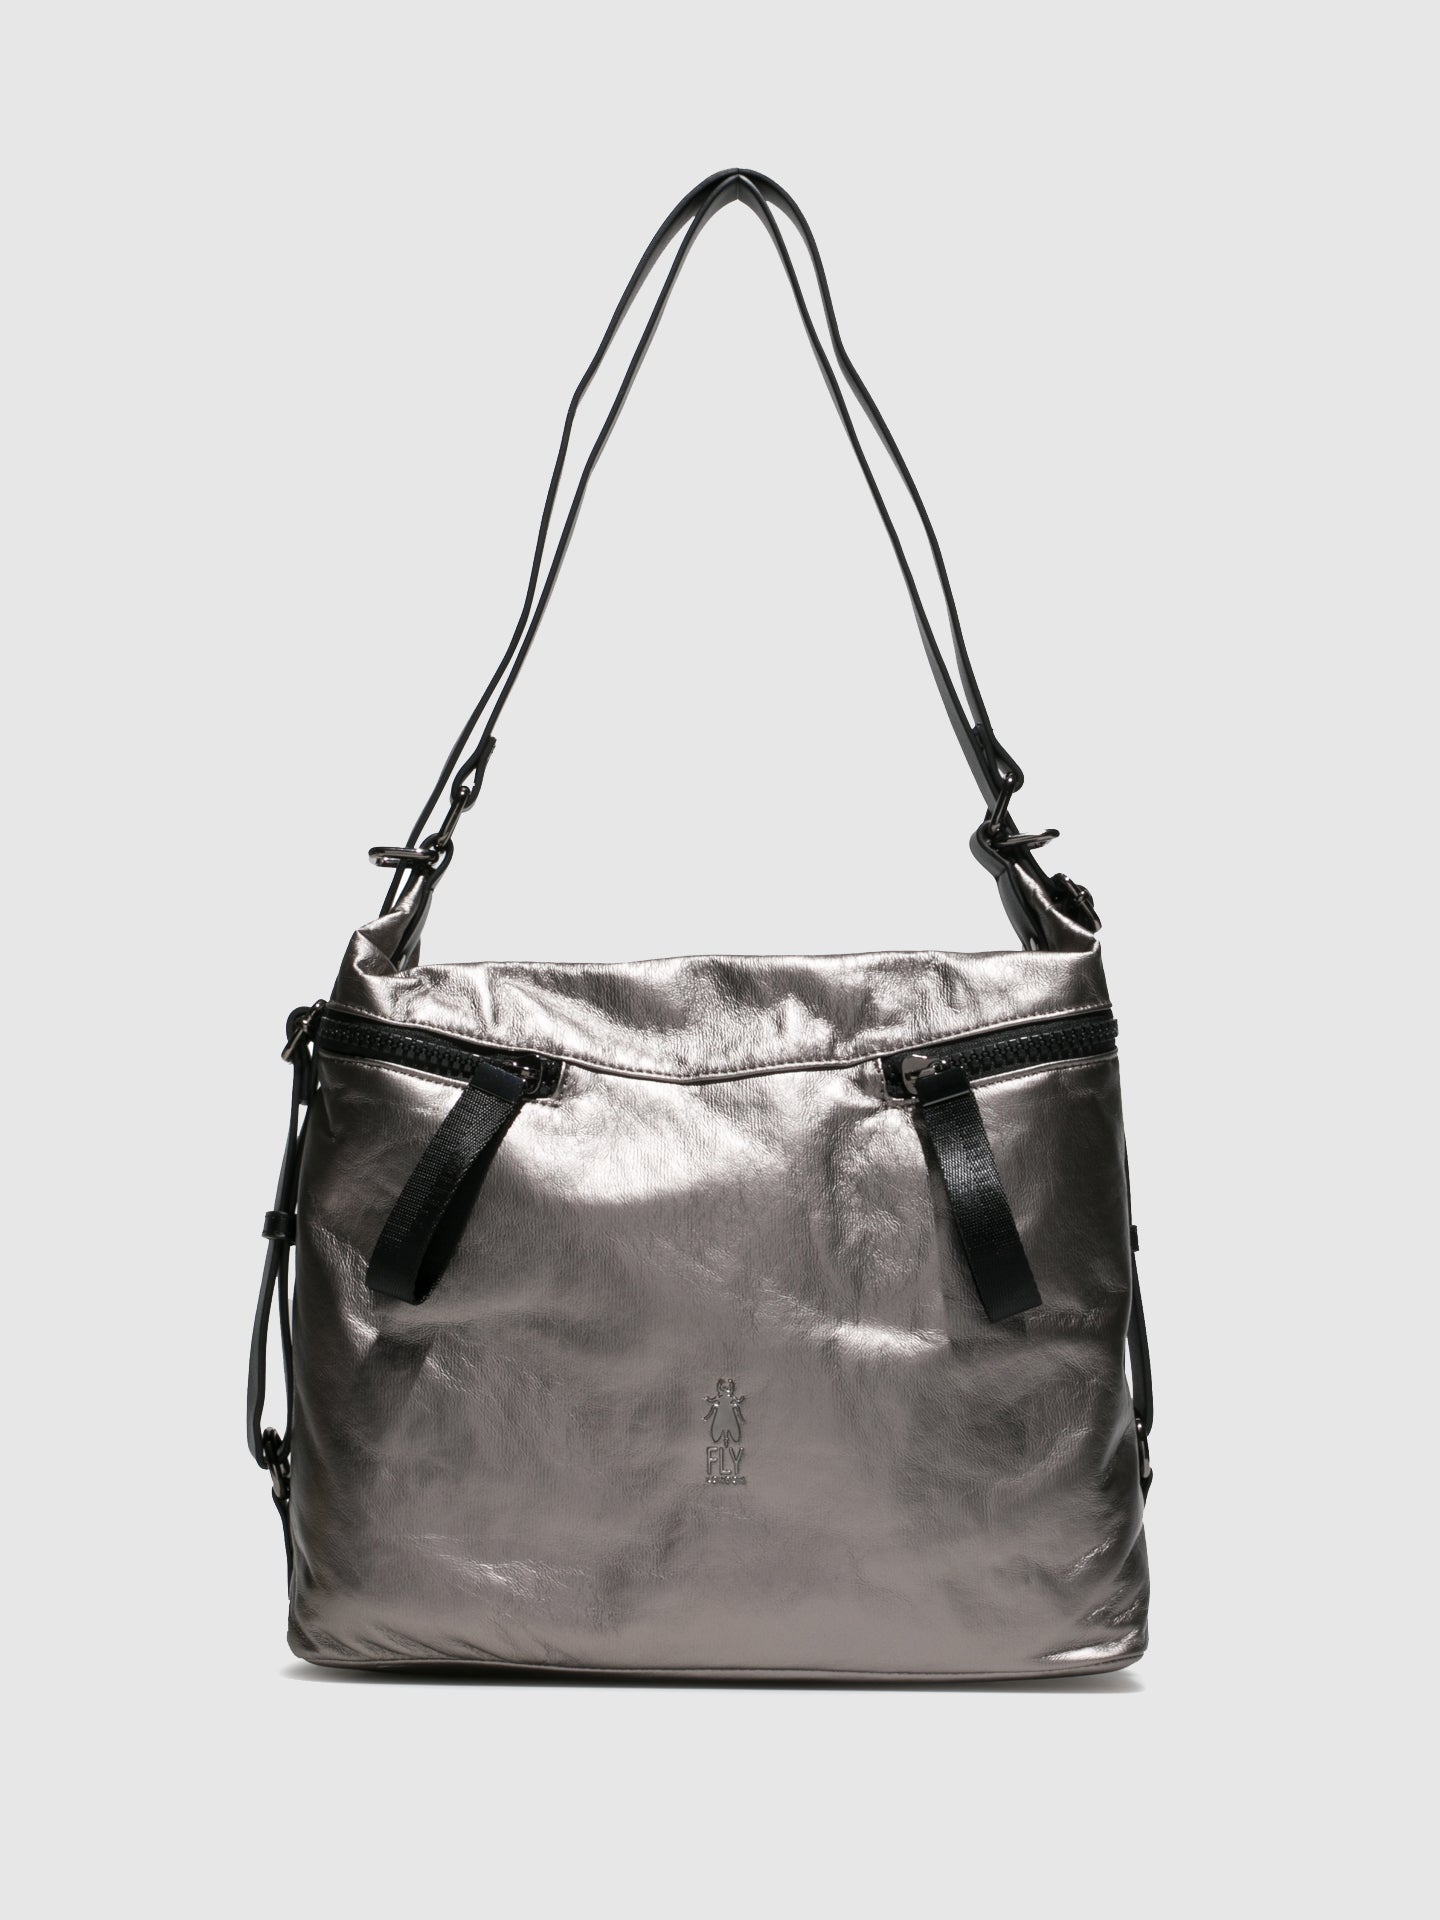 Fly London Shoulder Bags ARYA706FLY ATWOOD DK SILVER